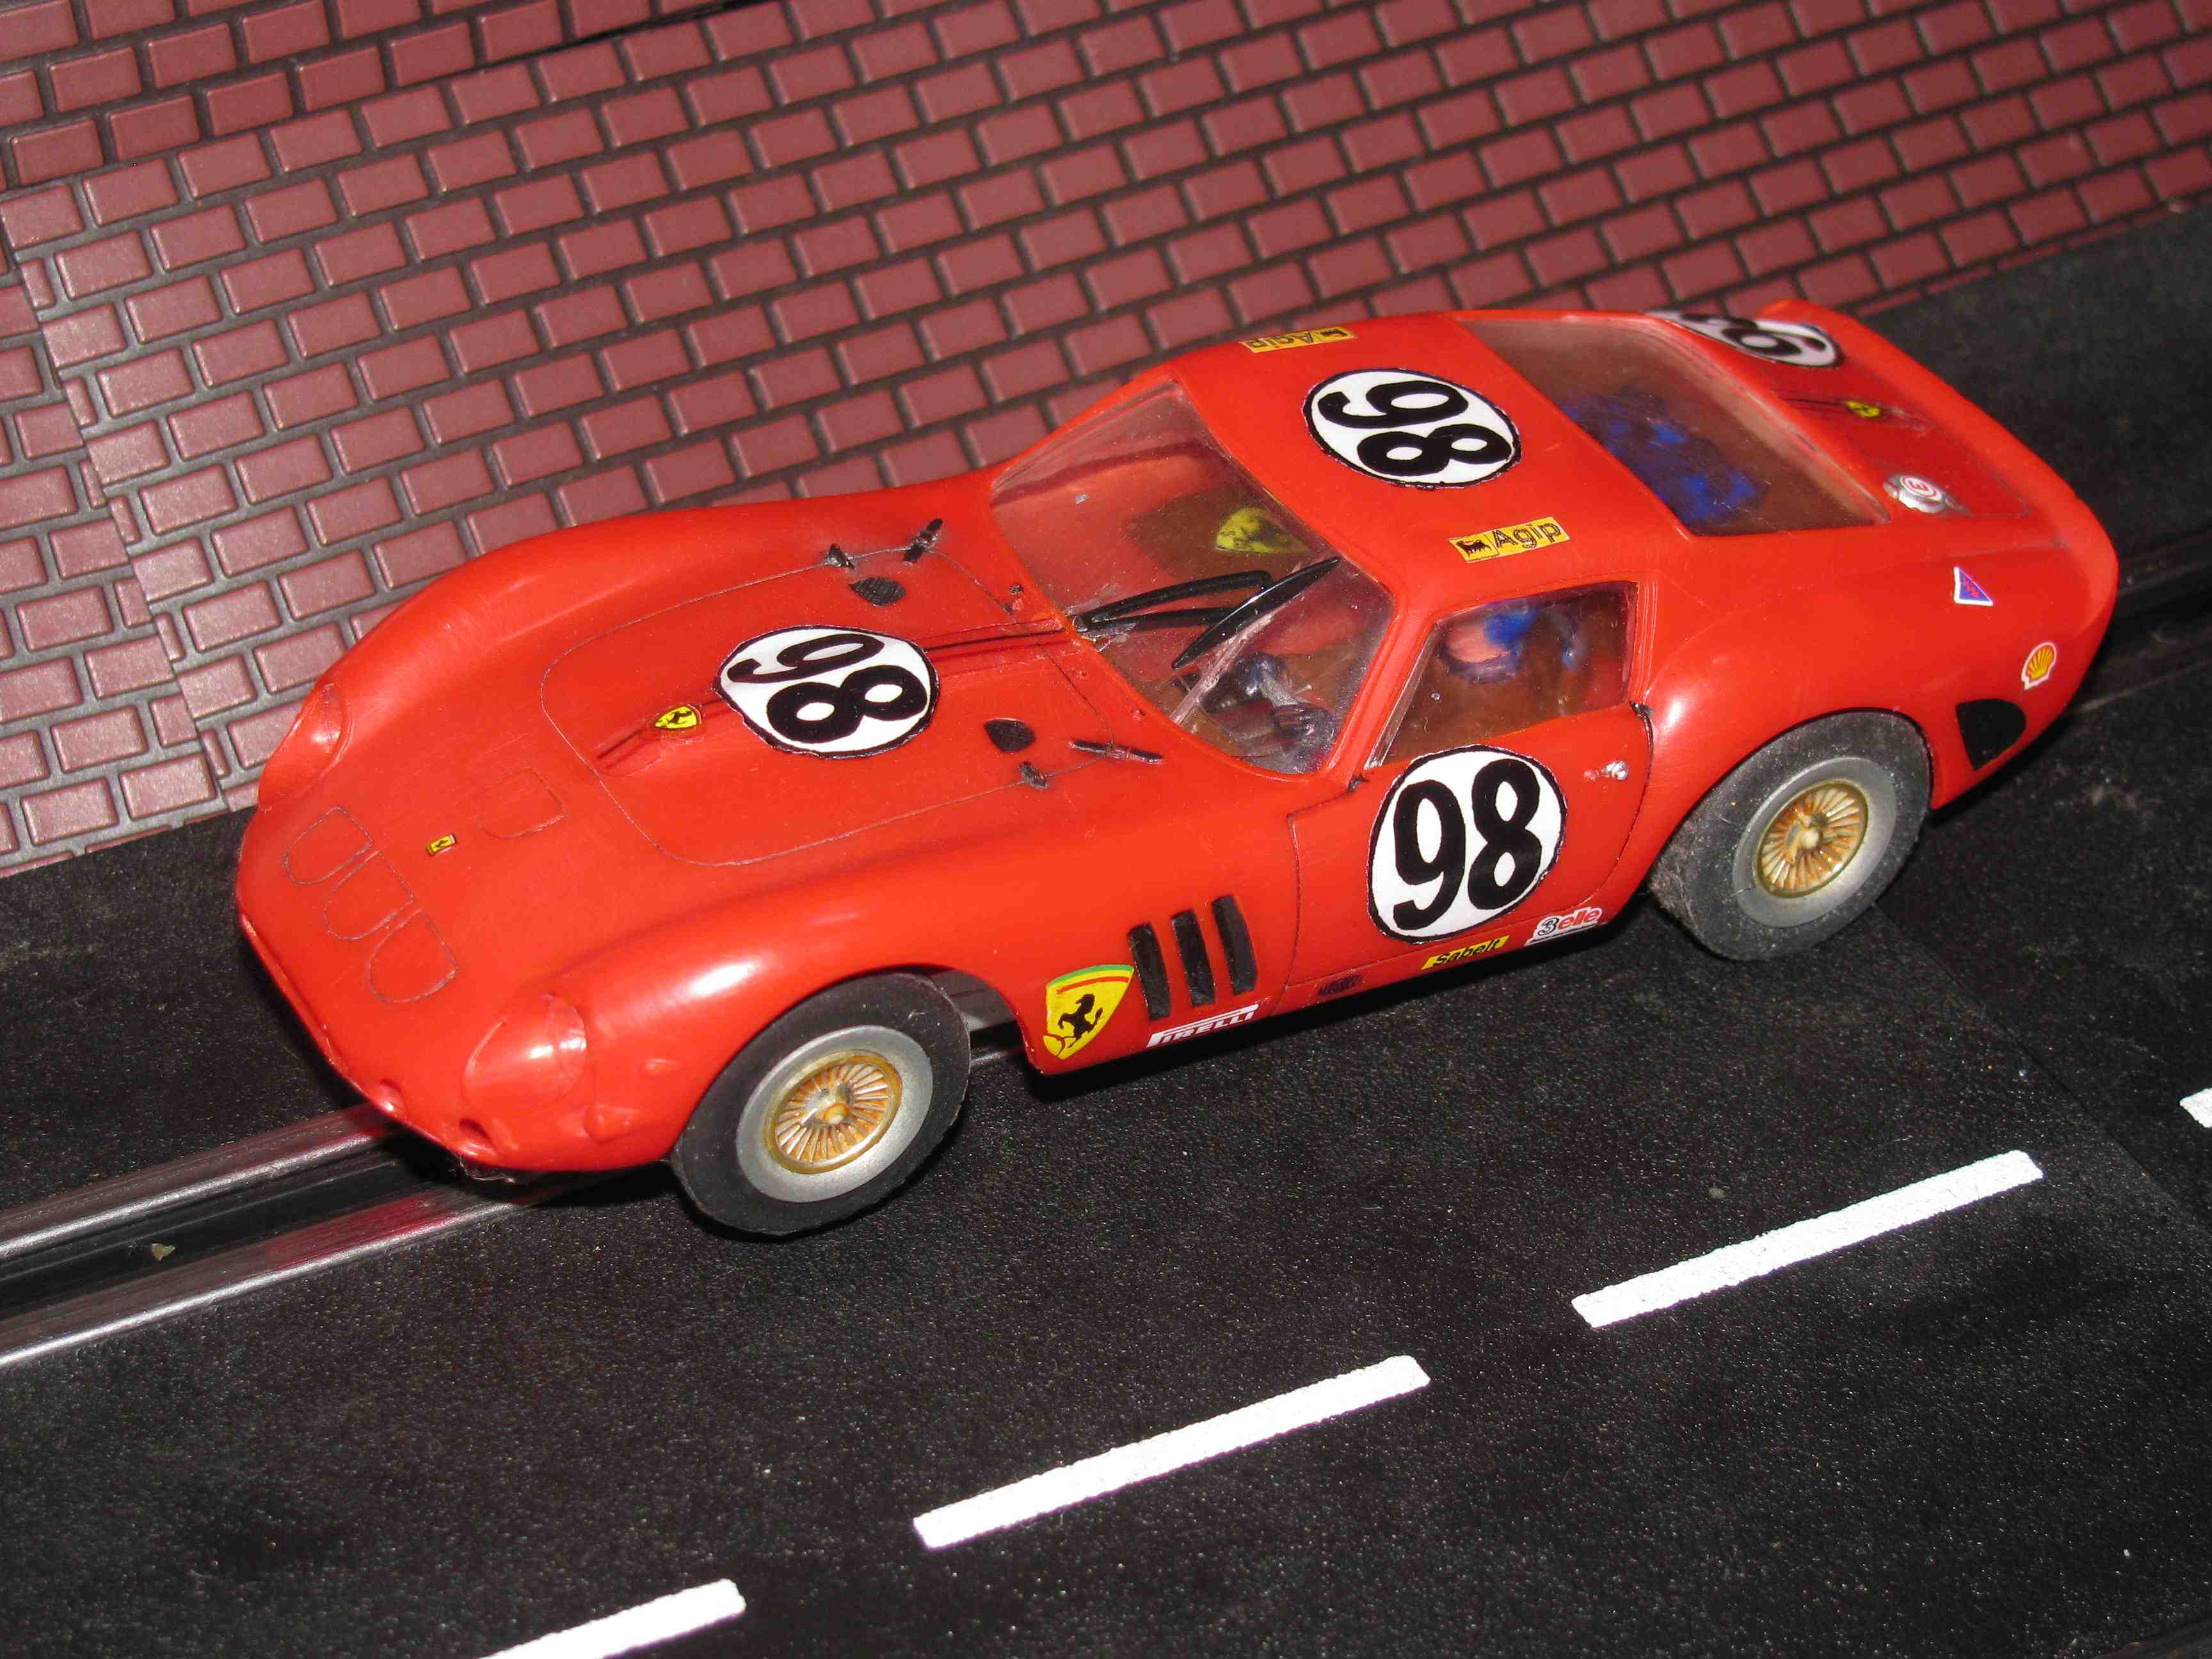 * SOLD * Vintage Revell Ferrari 250 GTO Slot Car – Red - Car#98 - 1/32 Scale